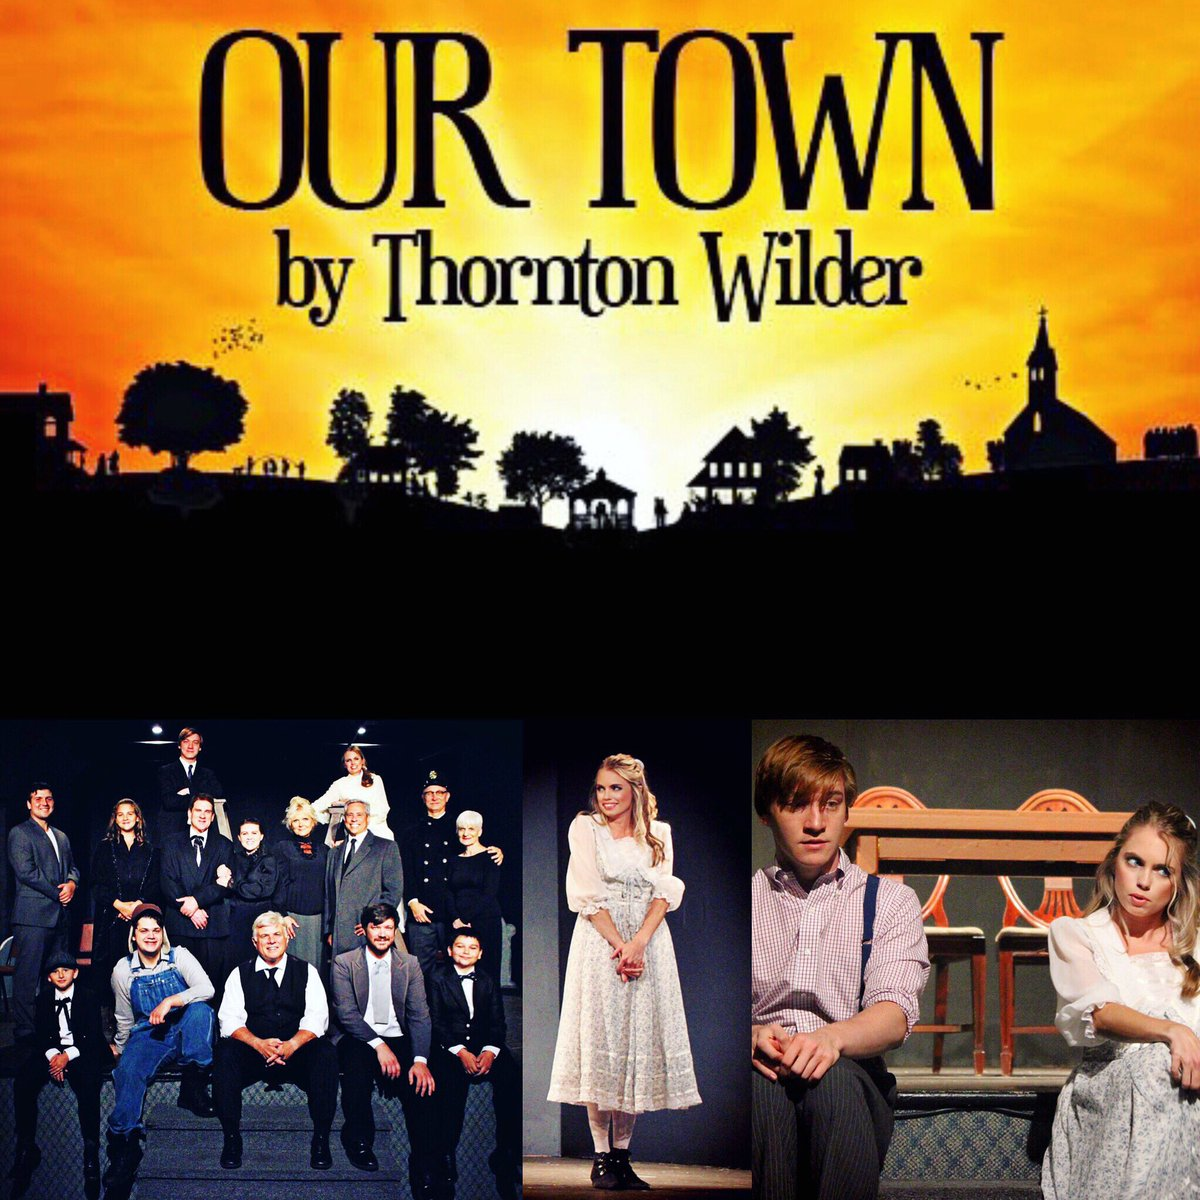 Opening night! Break a leg to all the cast and crew and to all my artist friends opening in productions this week as well! Hope to see you at Grover's Corners! #ActorLife <br>http://pic.twitter.com/BZEBaz5b52